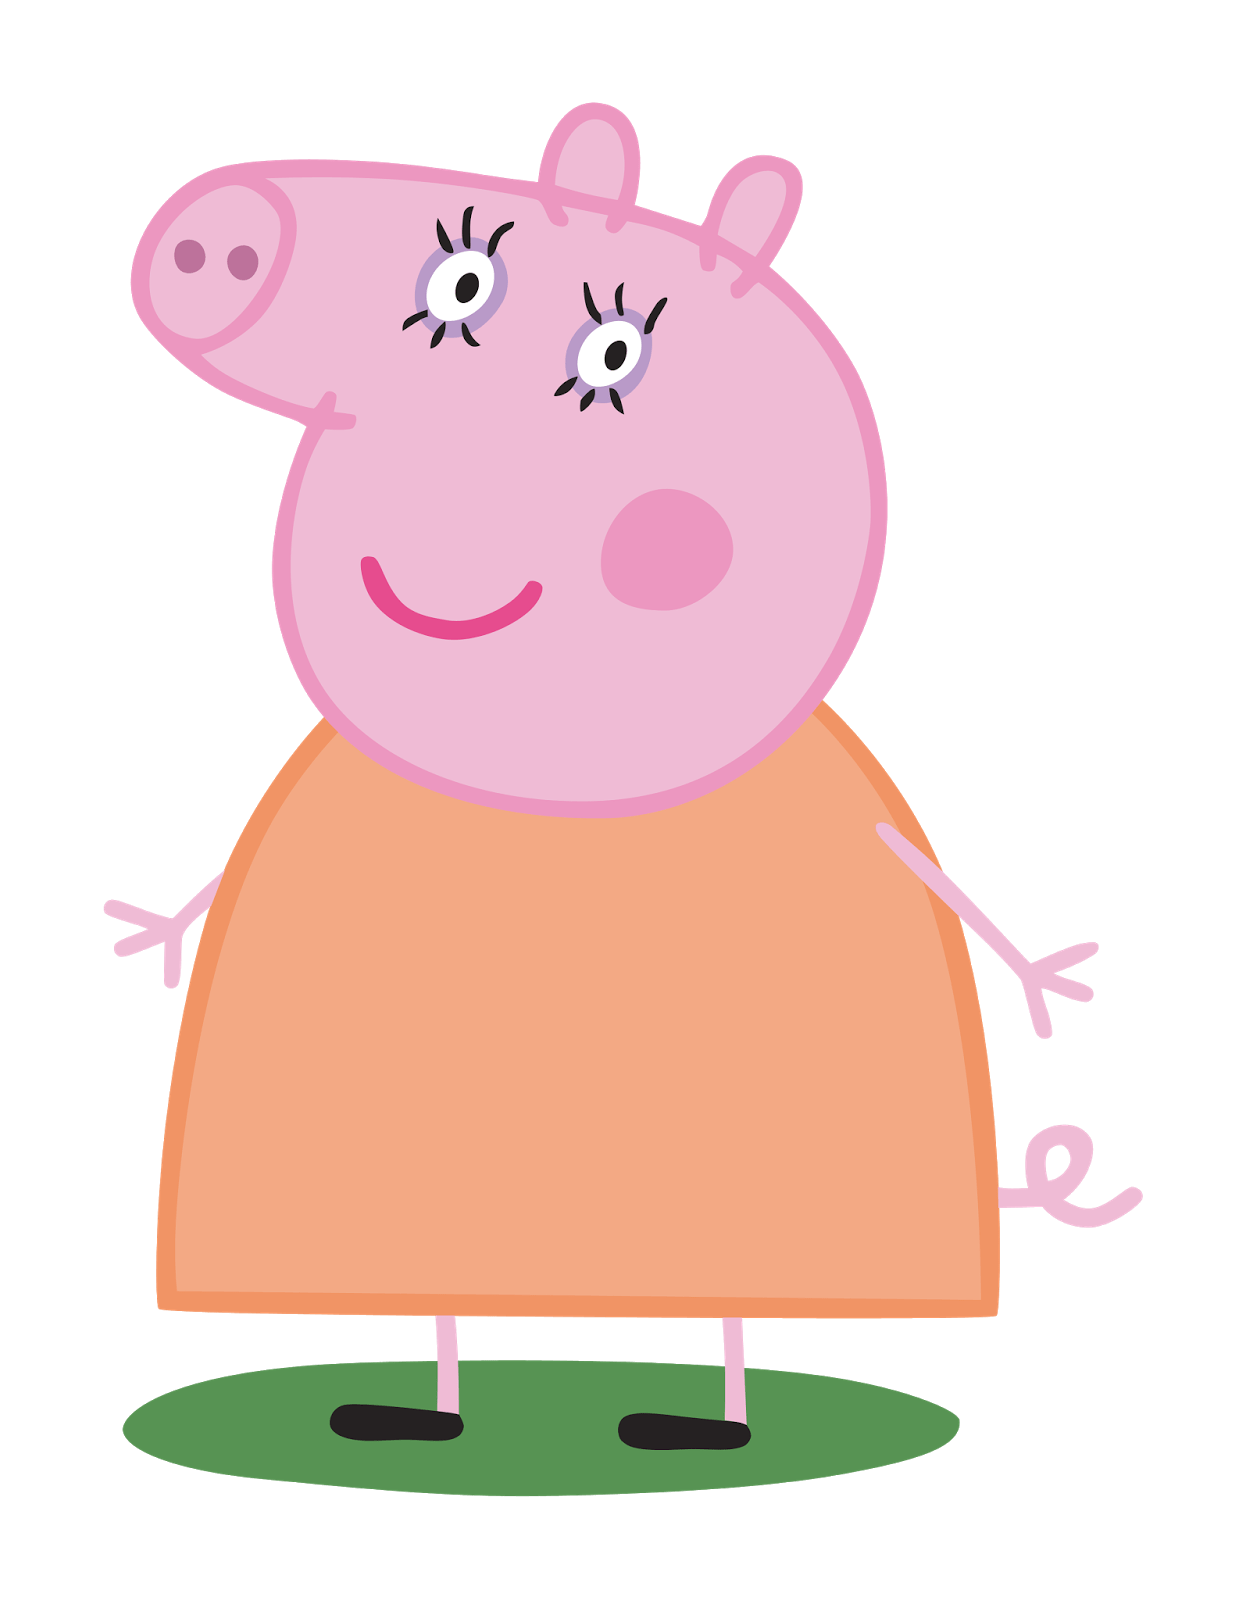 Mummy pig png stickpng. Clipart family transparent background